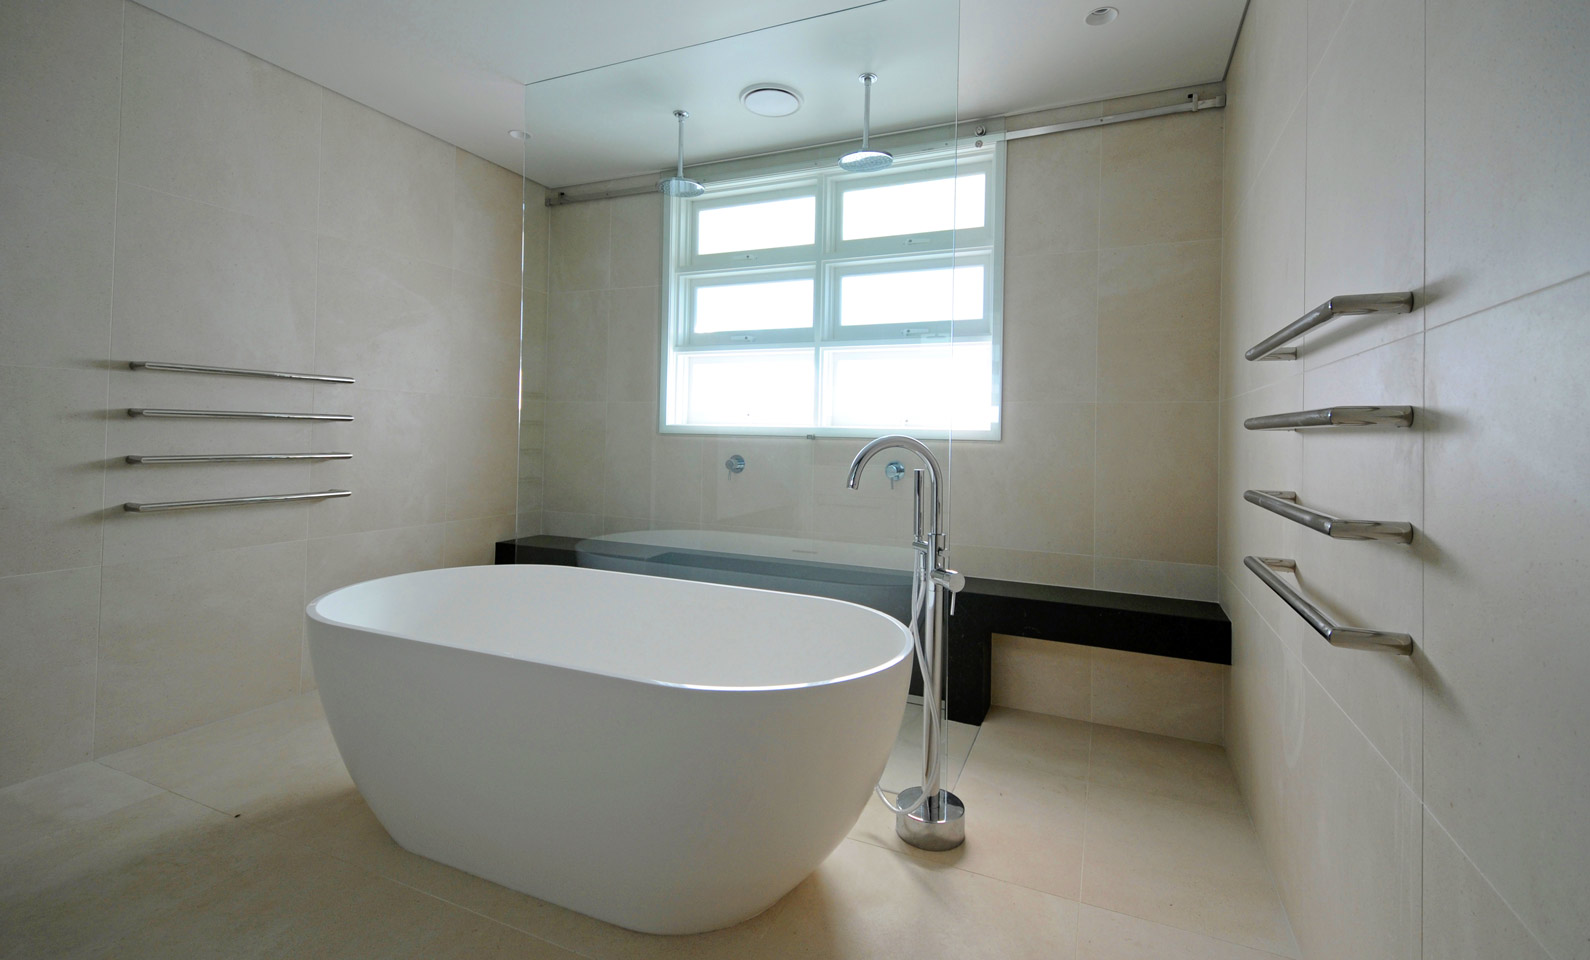 Hopetoun House Vaucluse - Completed Main Bathroom